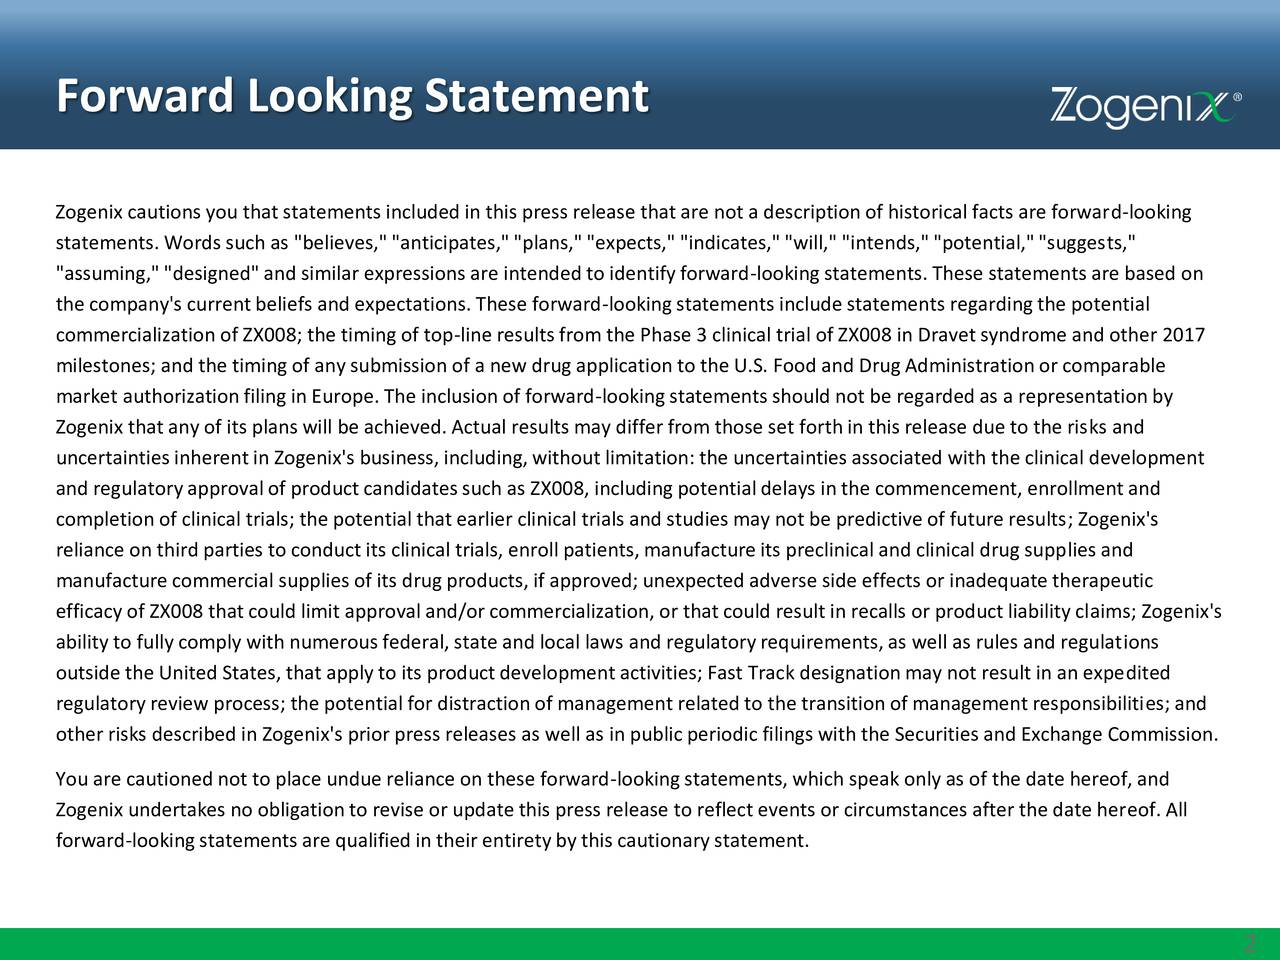 "Zogenix cautions you that statements included in this press release that are not a description of historical facts are forward-looking statements. Words such as ""believes,"" ""anticipates,""""plans,"" ""expects,"" ""indicates,"" ""will,"" ""intends,""""potential,""""suggests,"" ""assuming,"" ""designed""and similar expressions are intendedto identifyforward-lookingstatements. These statements are based on the company's currentbeliefs and expectations. These forward-lookingstatements include statements regardingthe potential commercialization of ZX008; the timing of top-line results from the Phase 3 clinical trial of ZX008 in Dravet syndrome and other 2017 milestones; and the timing of any submission of a new drug application to the U.S. Food and DrugAdministration or comparable market authorizationfiling in Europe. The inclusion of forward-lookingstatements should not be regardedas a representationby Zogenix that any of its plans will be achieved. Actual results may differ from those set forth in this release due to the risks and uncertainties inherentin Zogenix's business, including,without limitation: the uncertainties associated with the clinical development and regulatoryapprovalof product candidates such as ZX008, includingpotentialdelays in the commencement, enrollment and completion of clinical trials; the potential that earlier clinical trials and studies may not be predictive of future results; Zogenix's reliance on third parties to conduct its clinical trials, enroll patients,manufacture its preclinical and clinical drug supplies and manufacture commercial supplies of its drugproducts, if approved; unexpected adverse side effects or inadequate therapeutic efficacy of ZX008 that could limit approvaland/or commercialization, or that could result in recalls or product liabilityclaims; Zogenix's ability to fully comply with numerousfederal, state and local laws and regulatoryrequirements,as well as rules and regulations outside the United States, that apply to its product development activities; Fast Track designationmay not result in an expedited regulatoryreview process; the potential for distraction of management related to the transition of management responsibilities; and other risks described in Zogenix's prior press releases as well as in publicperiodic filings with the Securities and Exchange Commission. You are cautioned not to place undue reliance on these forward-lookingstatements, which speak only as of the date hereof, and Zogenix undertakes no obligation to revise or update this press release to reflect events or circumstances after the date hereof. All forward-looking statements are qualified in their entirety by this cautionary statement."